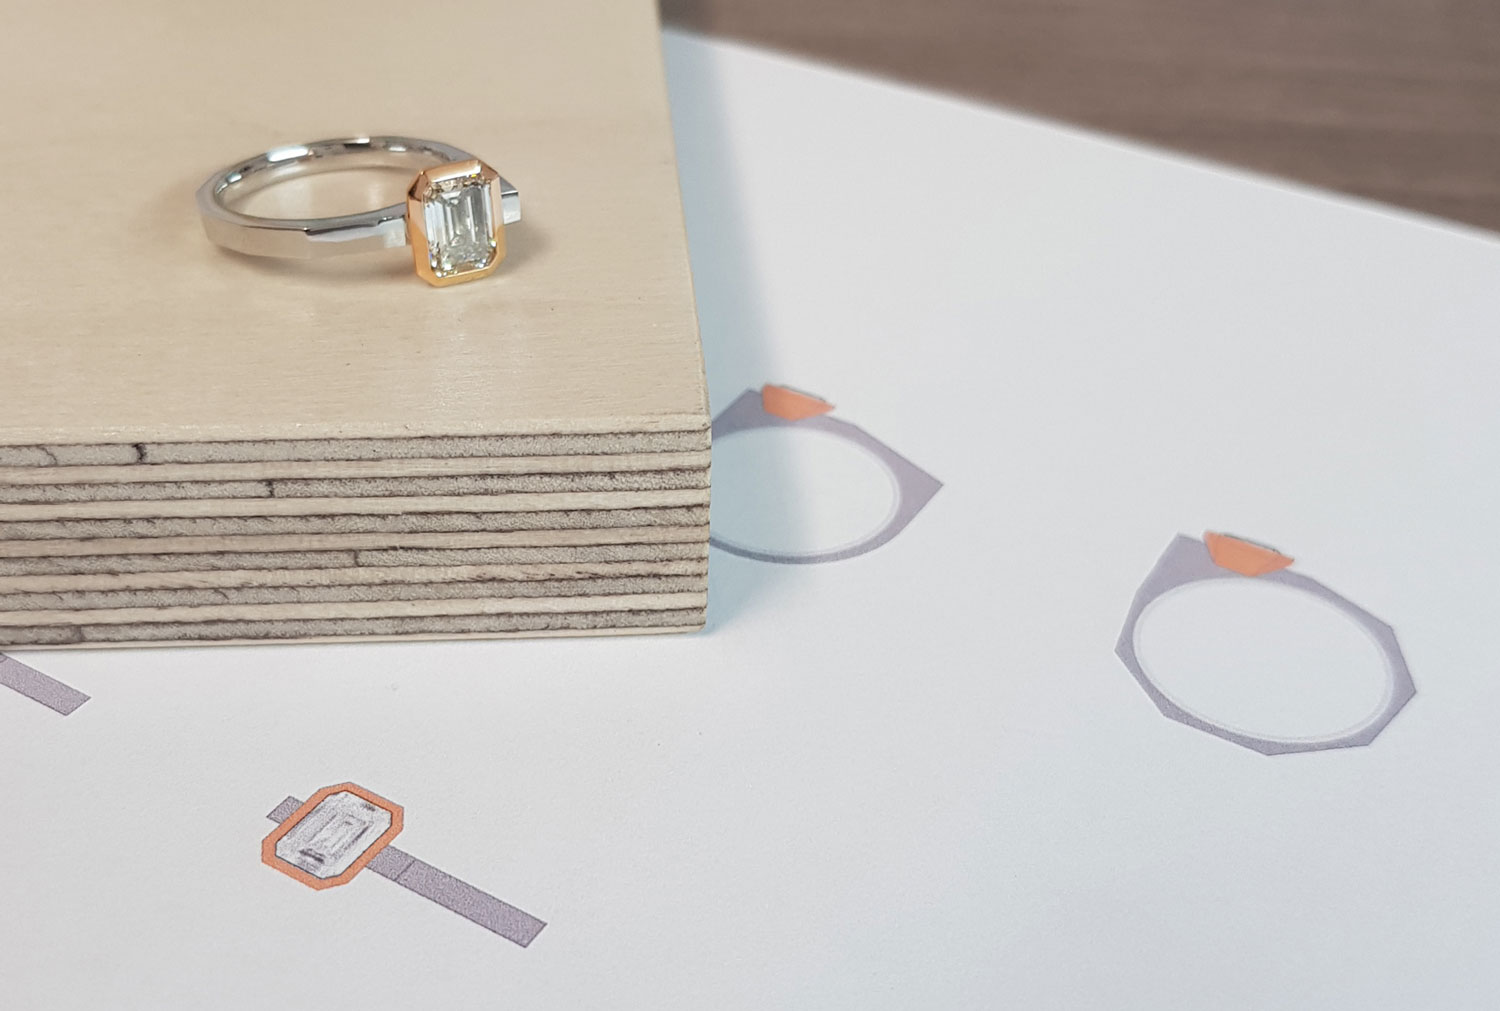 Platinum and gold engagement ring set with an emerald cut diamond shown with design sketches.